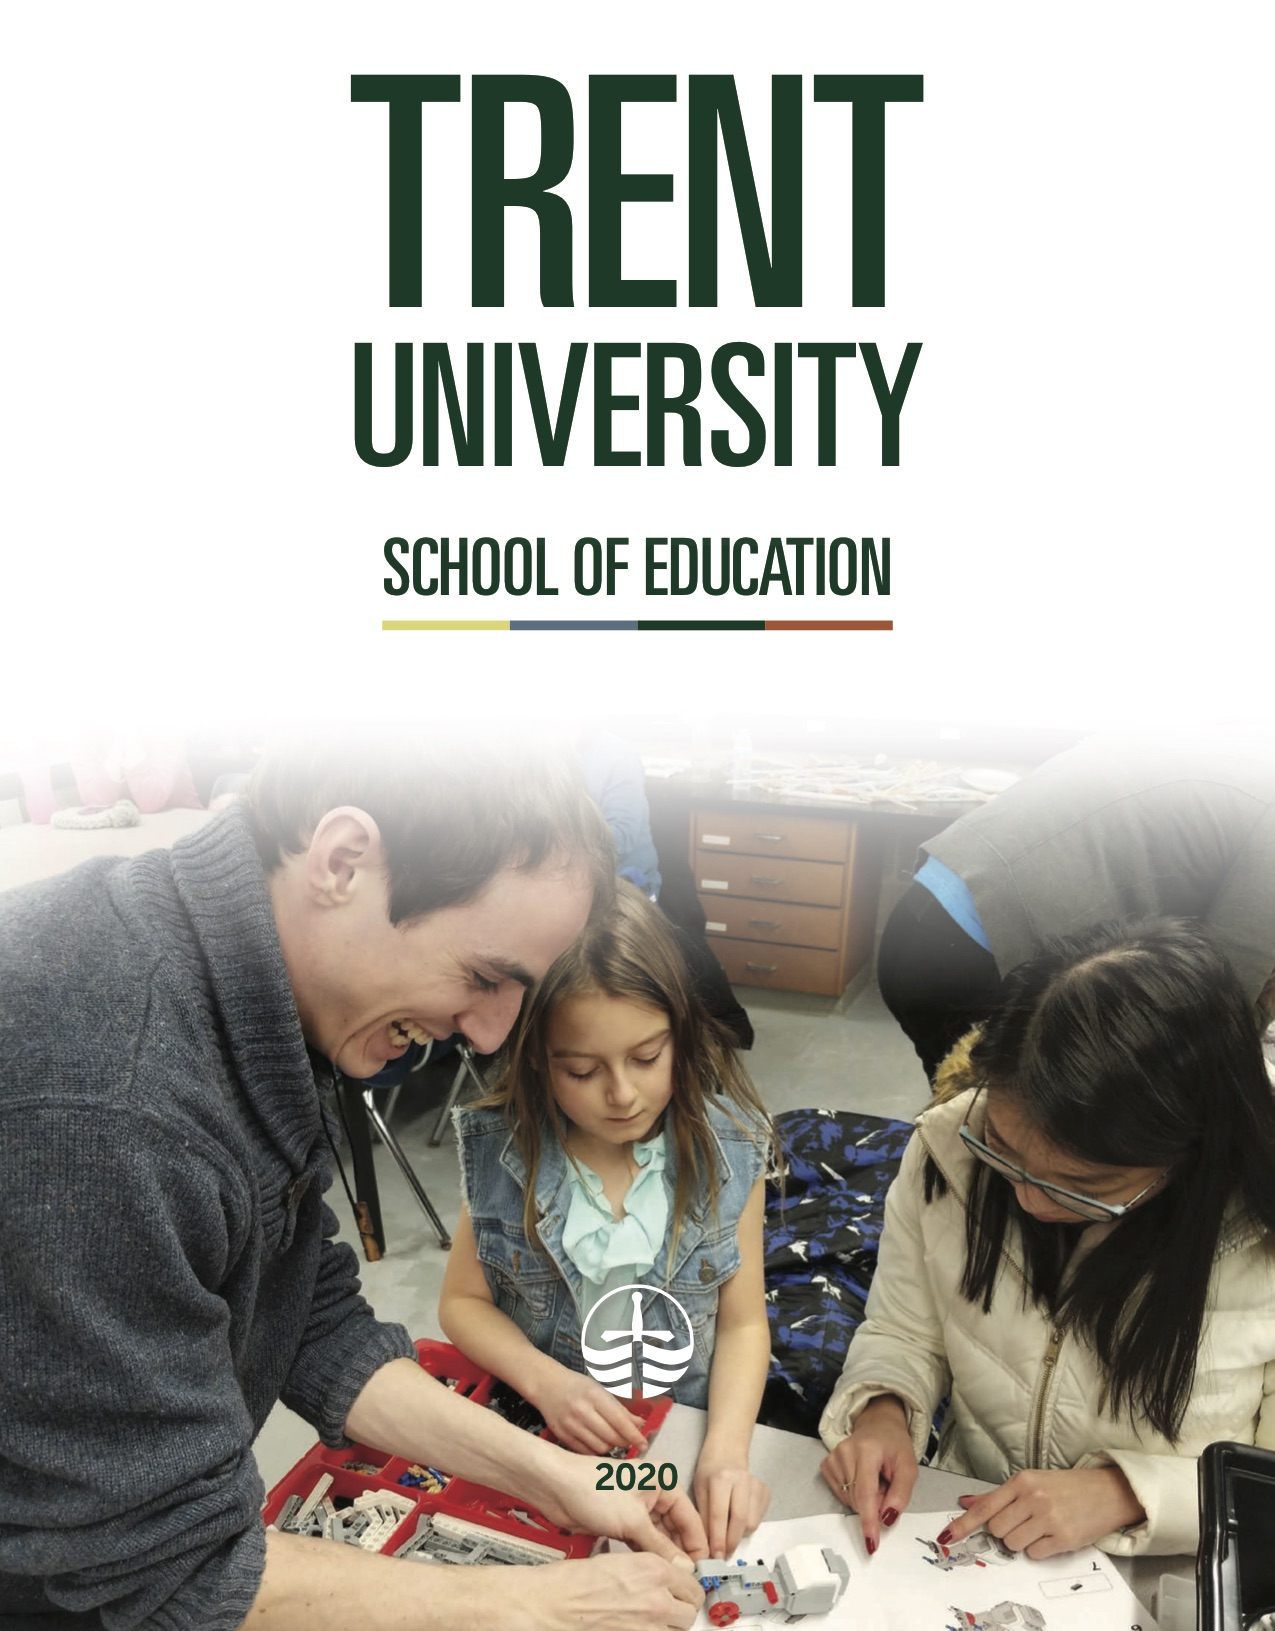 2020 School of Education Viewbook